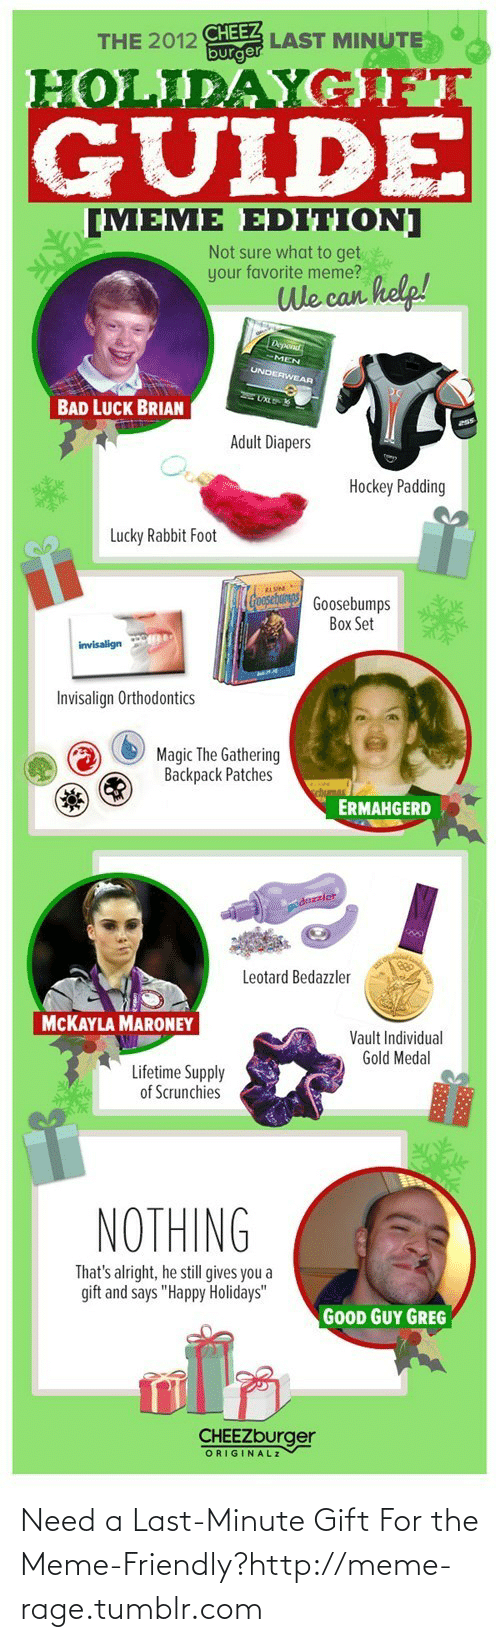 "Bad, Hockey, and Meme: CHEEZ  burger  LAST MINUTE  THE 2012  HOLIDAYGFT  GUIDE  [MEME EDITION]  Not sure what to get  your favorite meme?  We can kelp!  Depond  UNDERWEAR  BAD LUCK BRIAN  Adult Diapers  Hockey Padding  Lucky Rabbit Foot  (Coosebang Goosebumps  Box Set  invisalign  Invisalign Orthodontics  Magic The Gathering  Backpack Patches  ERMAHGERD  dazzler  Leotard Bedazzler  MCKAYLA MARONEY  Vault Individual  Gold Medal  Lifetime Supply  of Scrunchies  NOTHING  That's alright, he still gives you a  gift and says ""Happy Holidays""  GOOD GUY GREG  CHEEZburger  ORIGINALZ Need a Last-Minute Gift For the Meme-Friendly?http://meme-rage.tumblr.com"